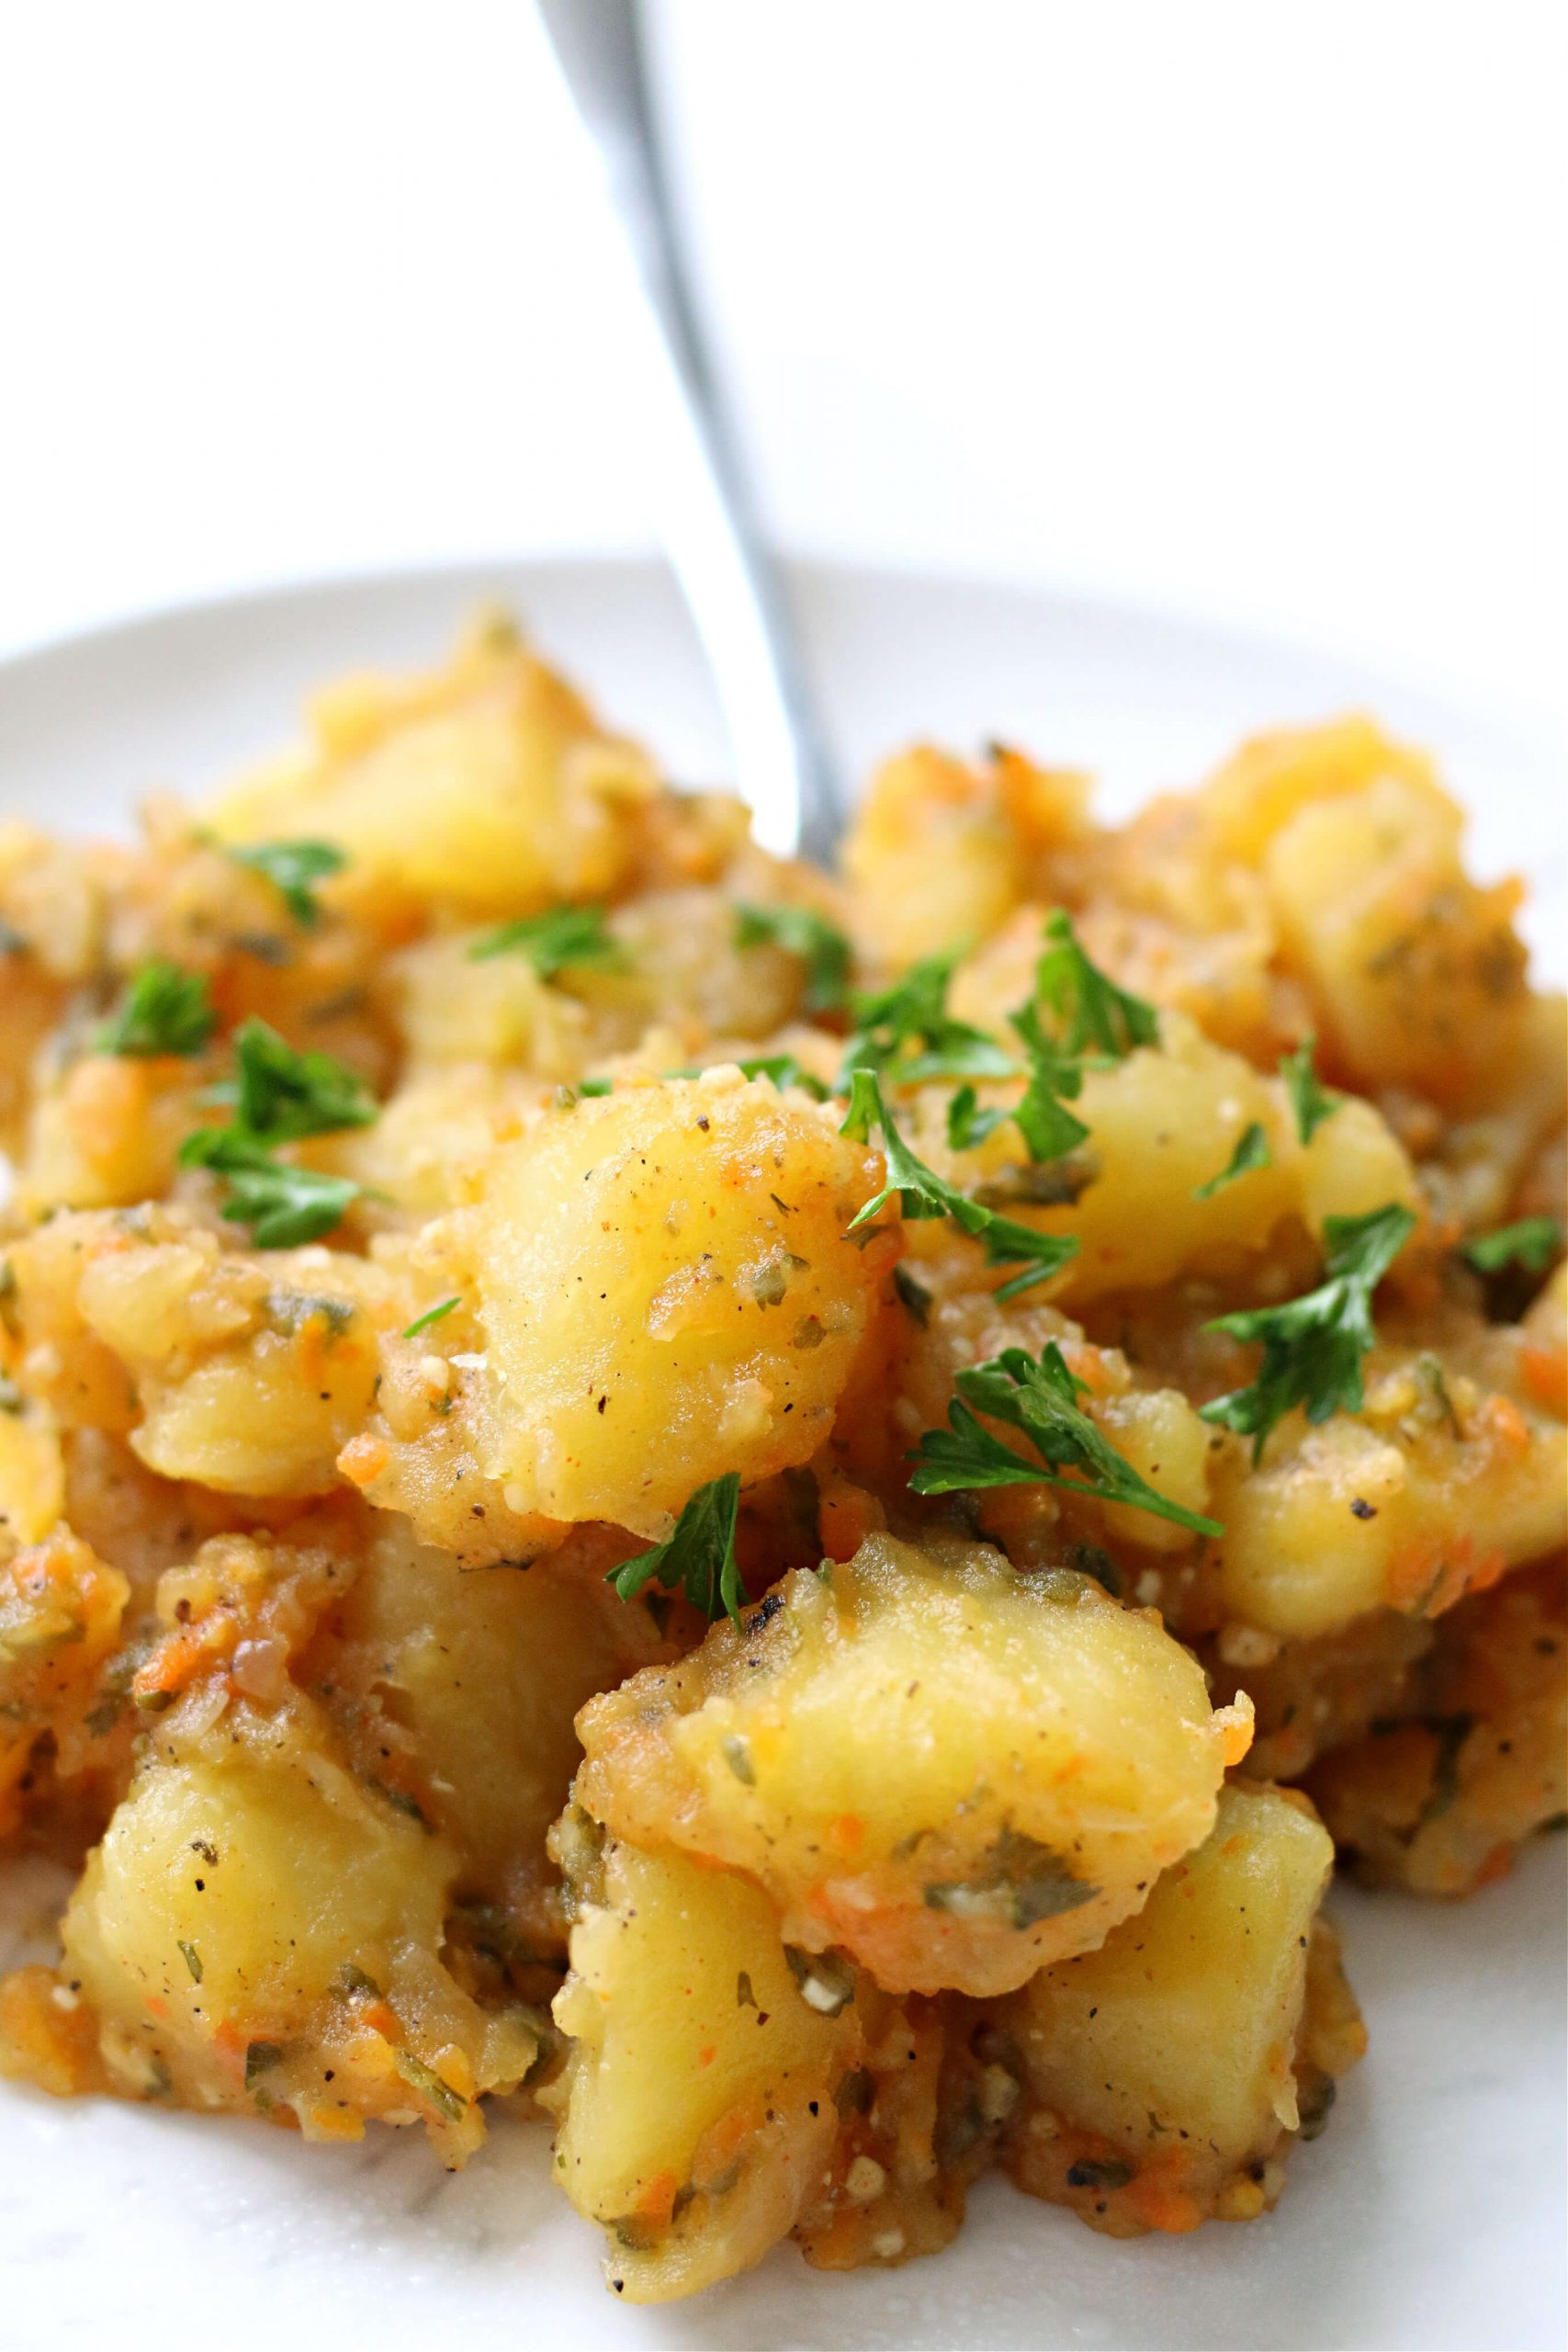 Instant Pot Basque Potatoes - 365 Days of Slow Cooking and Pressure Cooking